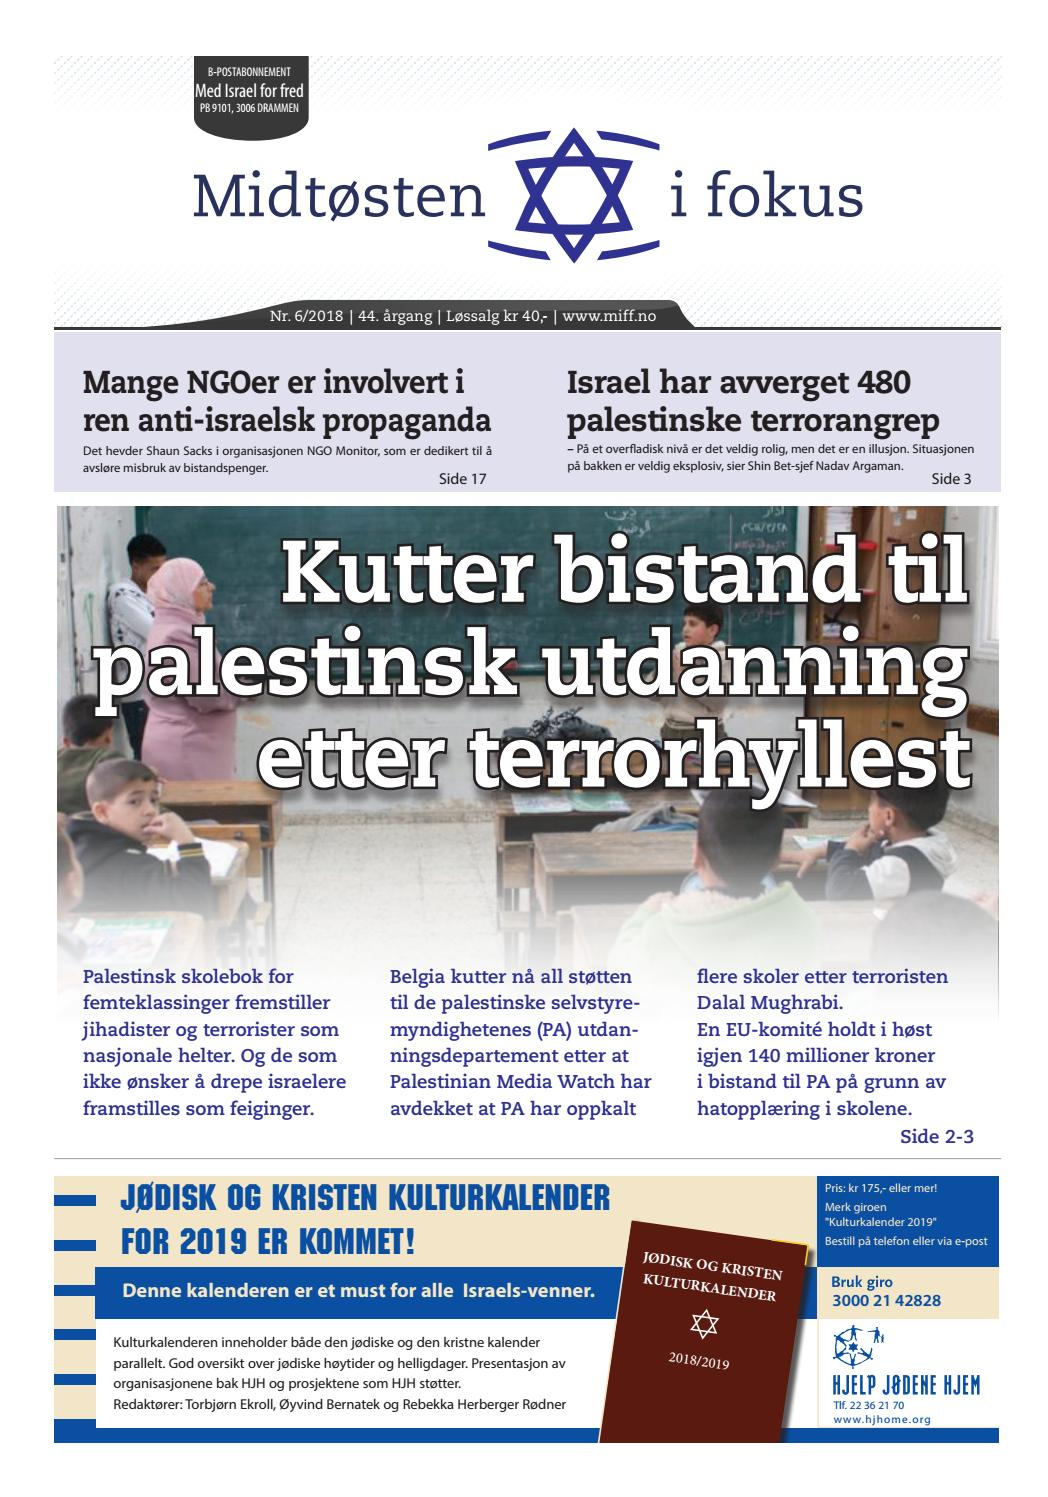 0269f025 2018-06 Midtøsten i fokus by Med Israel for fred (MIFF) - issuu